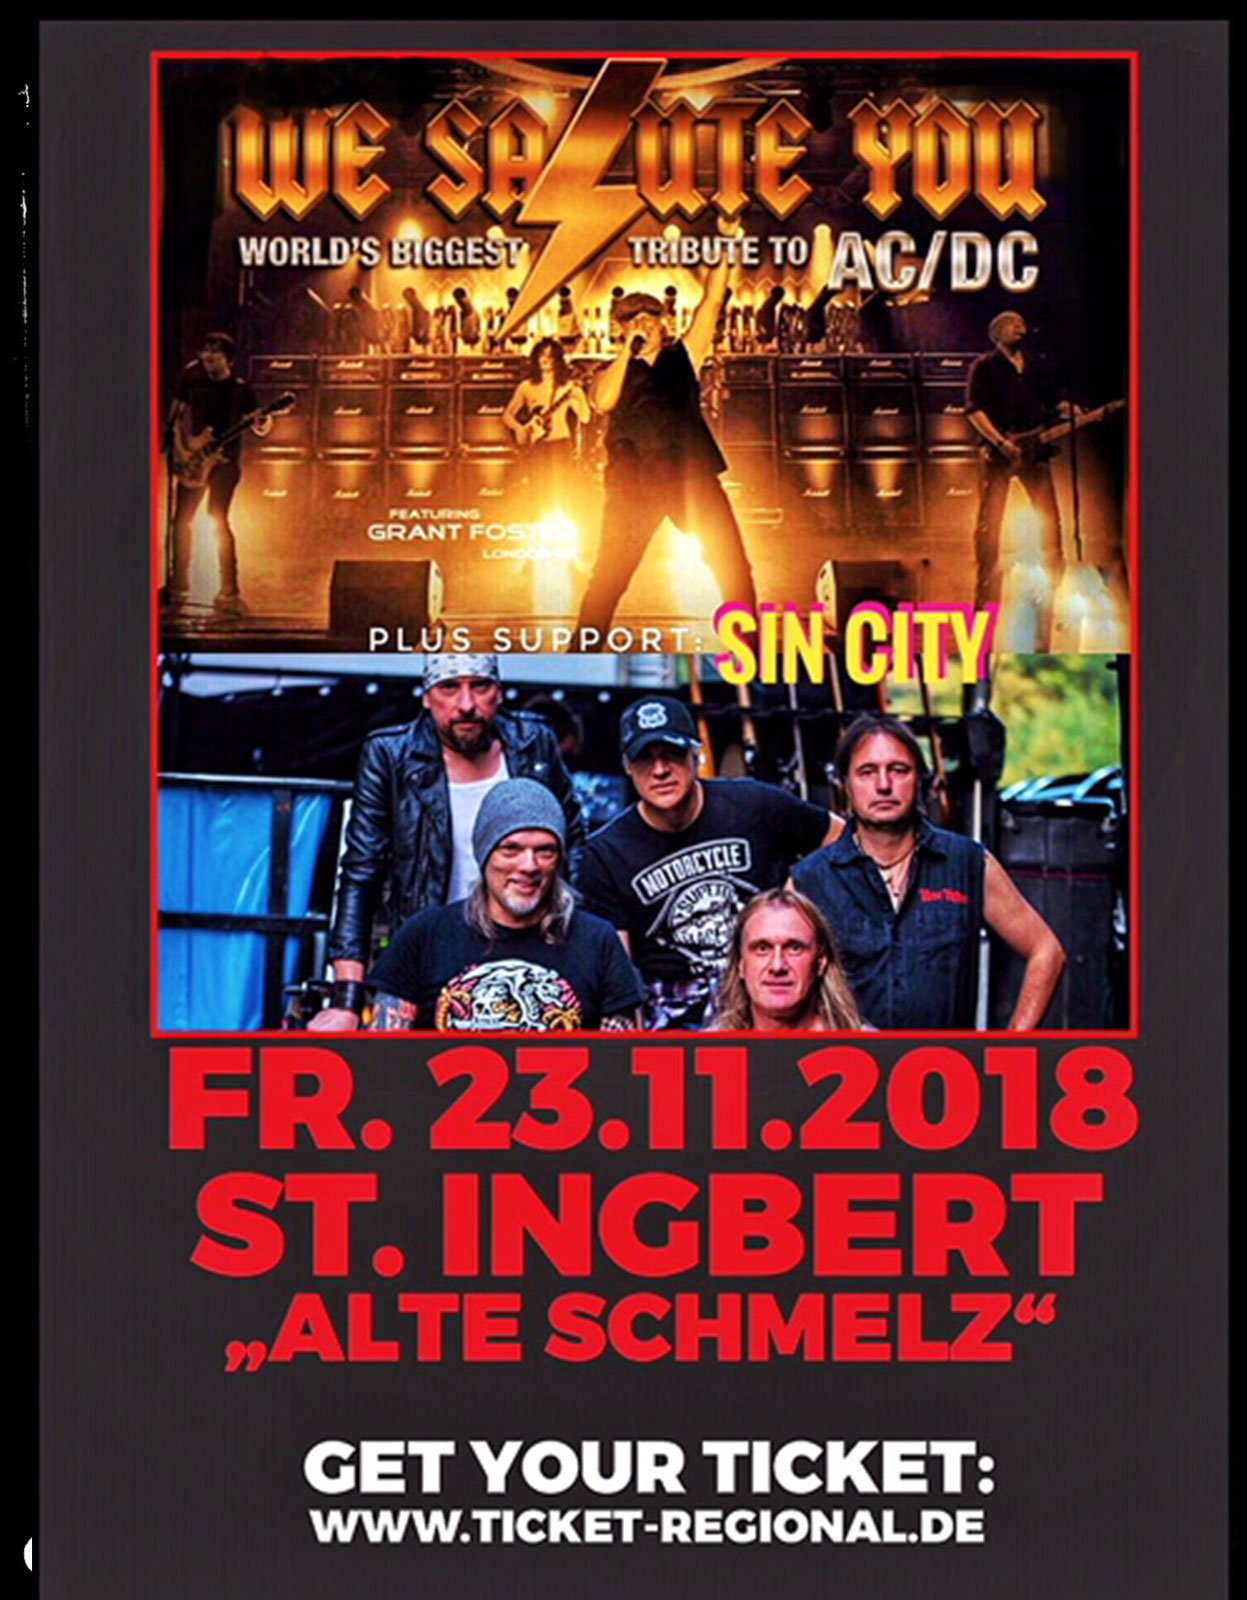 SIN/CITY supports We Salute You AC/DC Tribute Show / Live - 23. November 2018 St. Ingbert Alte Schmelz